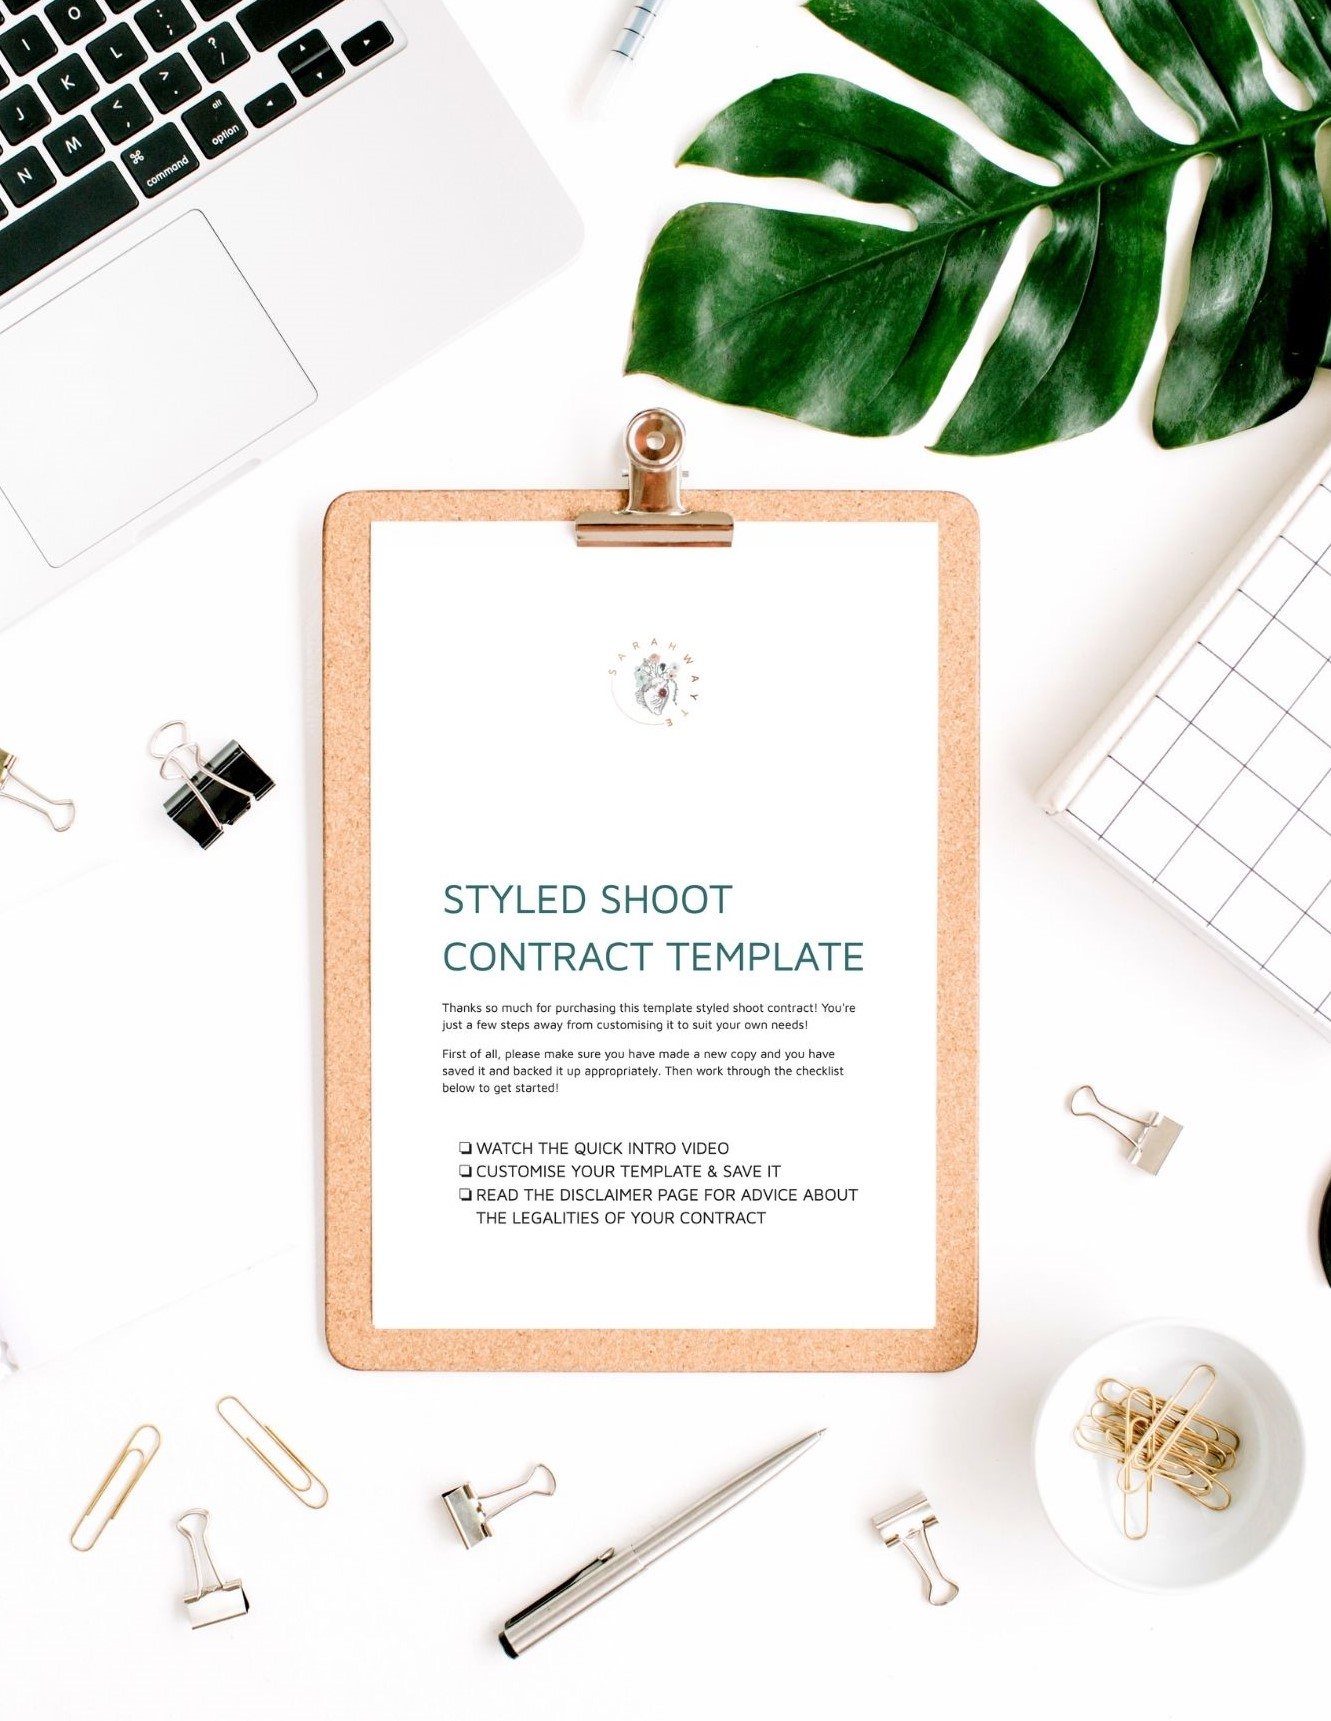 Styled Shoot Contract image on desk